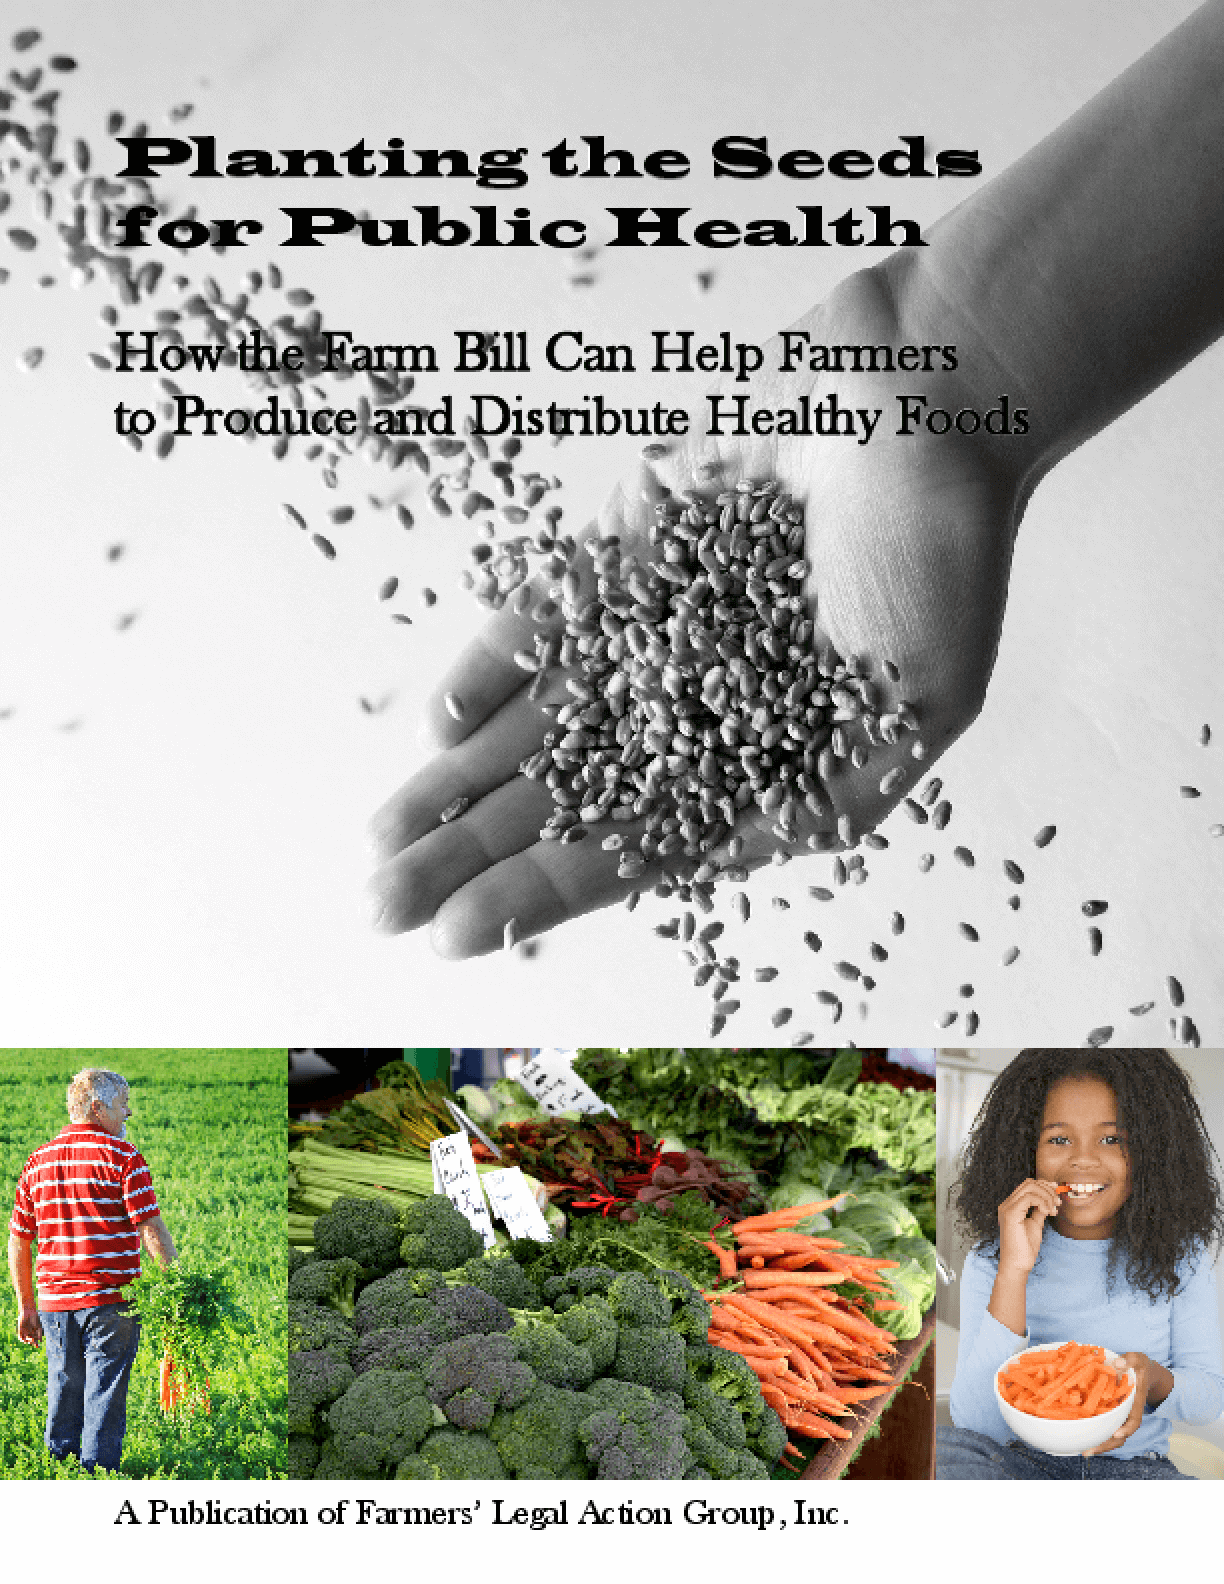 Planting the Seeds for Public Health: How the Farm Bill Can Help Farmers to Produce and Distribute Healthy Foods